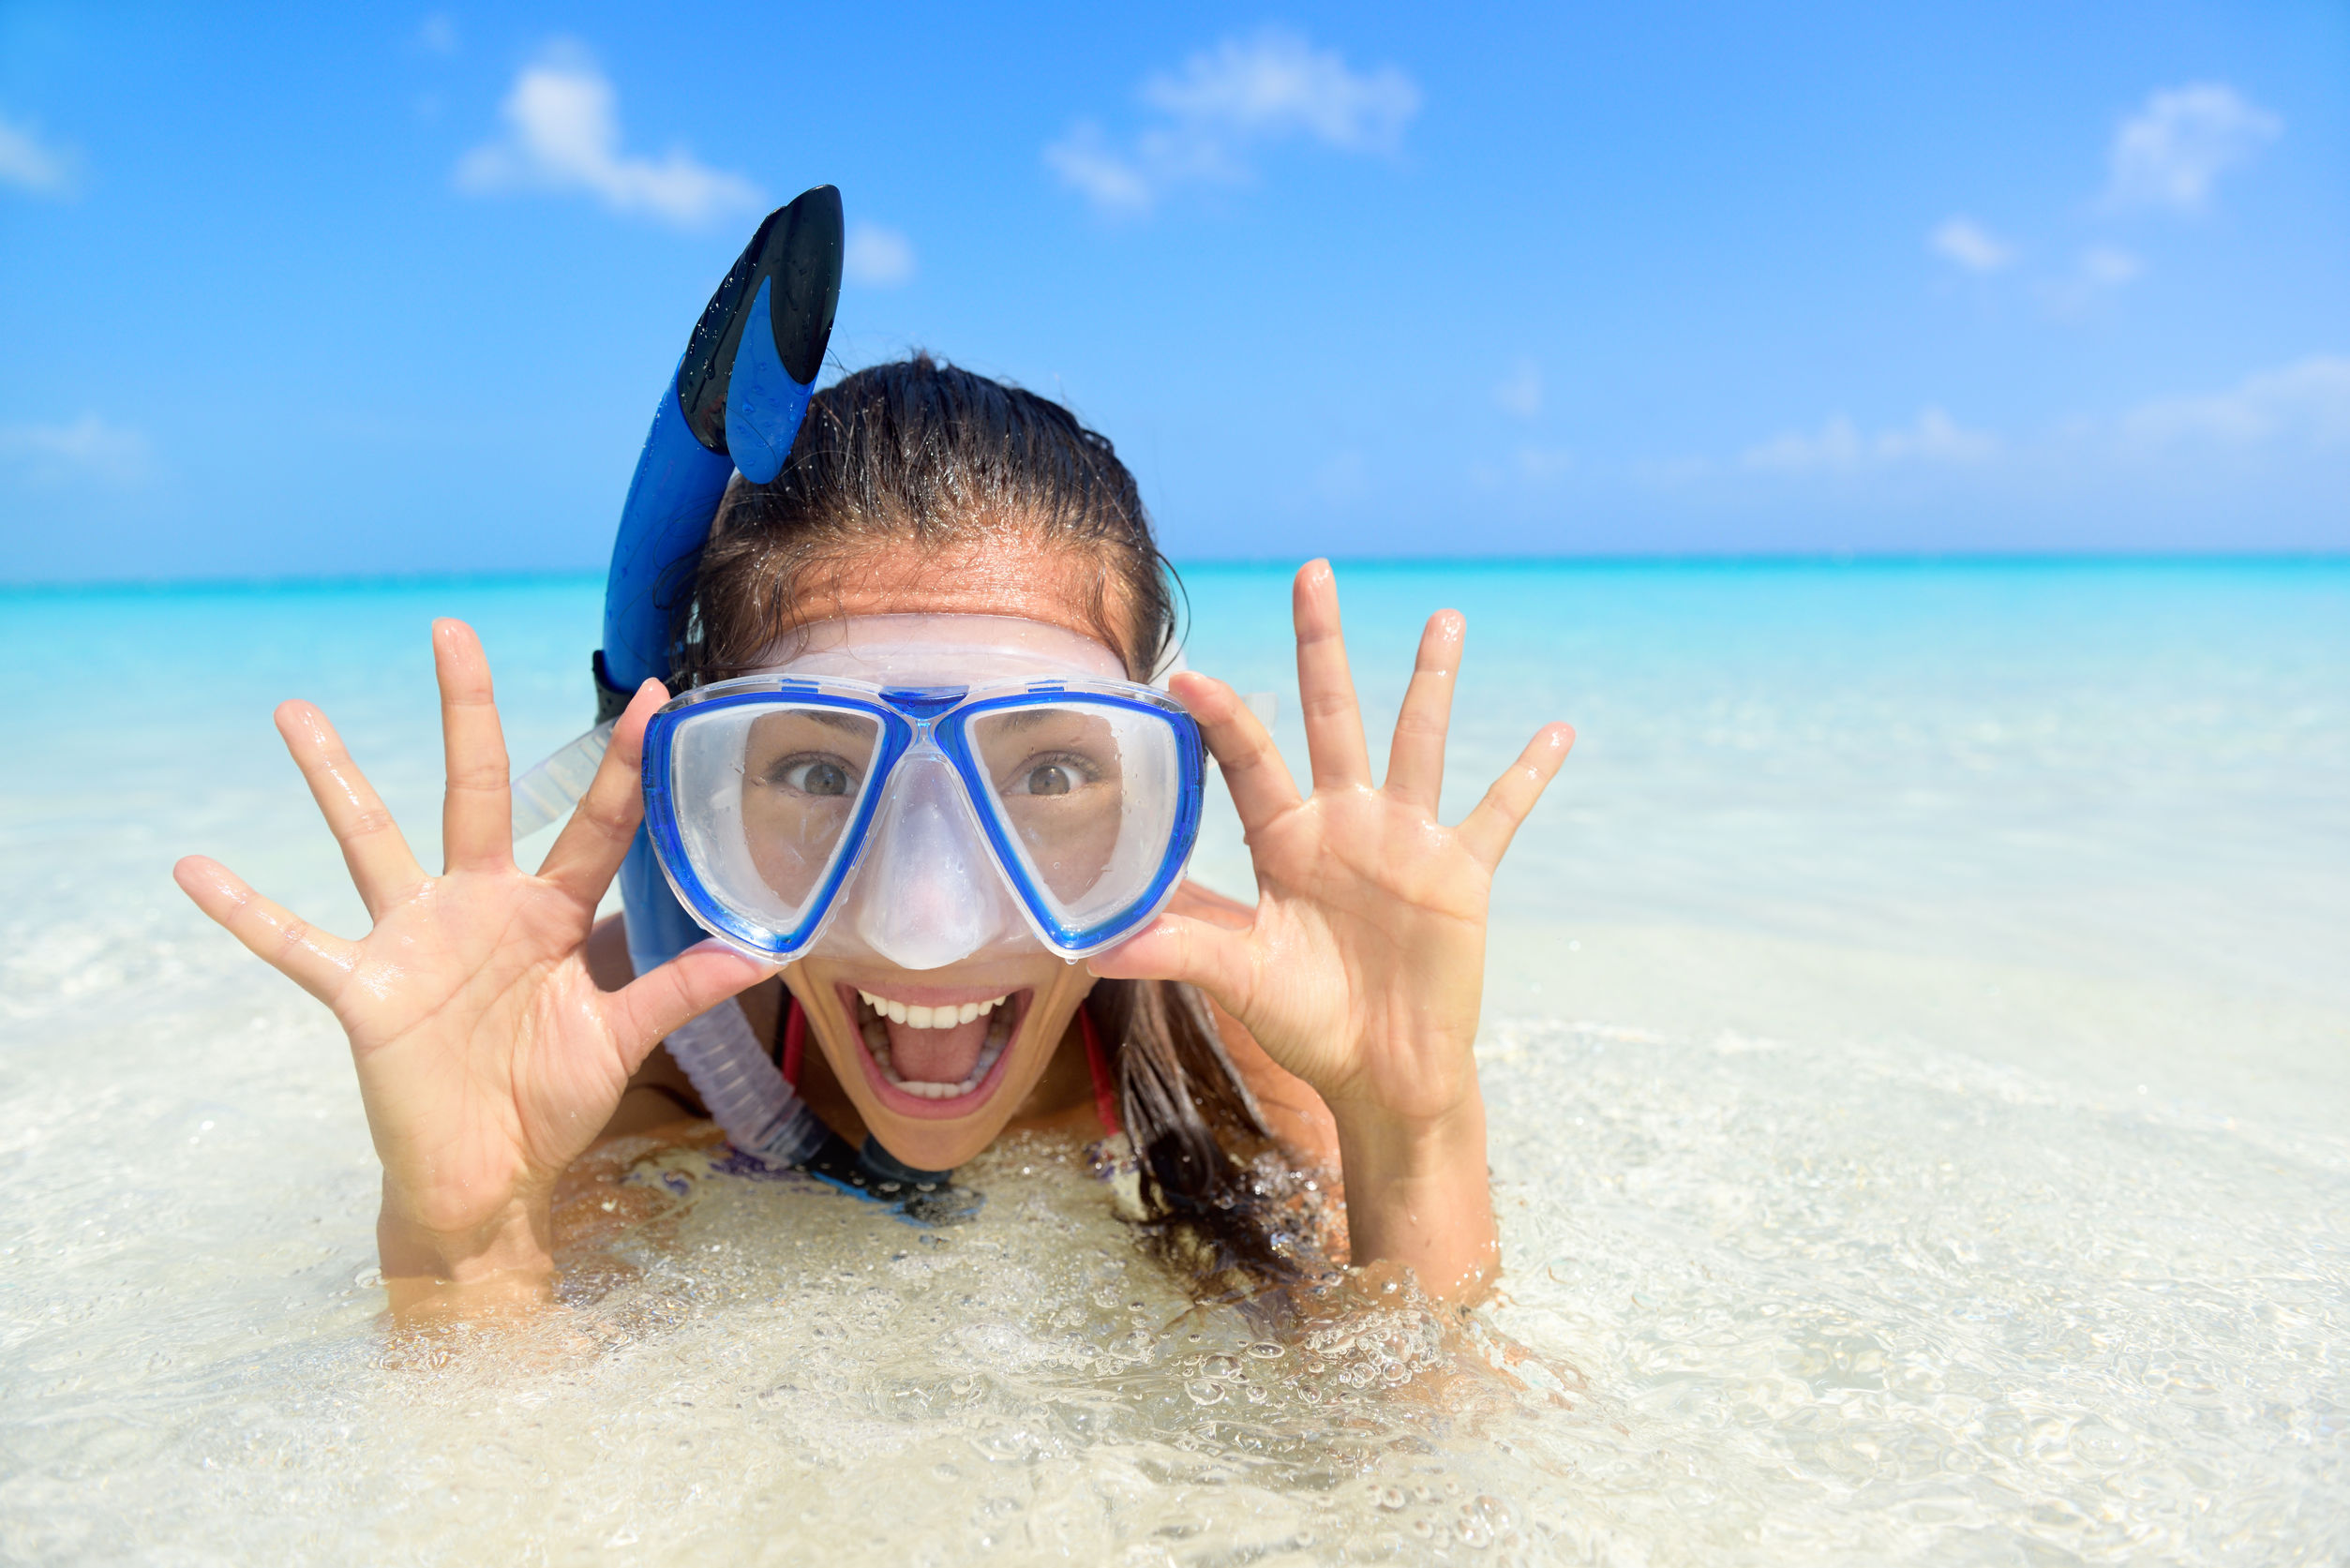 Vacation Travel Packages to the Caribbean - Sunset Travel & Cruise, Chicago IL